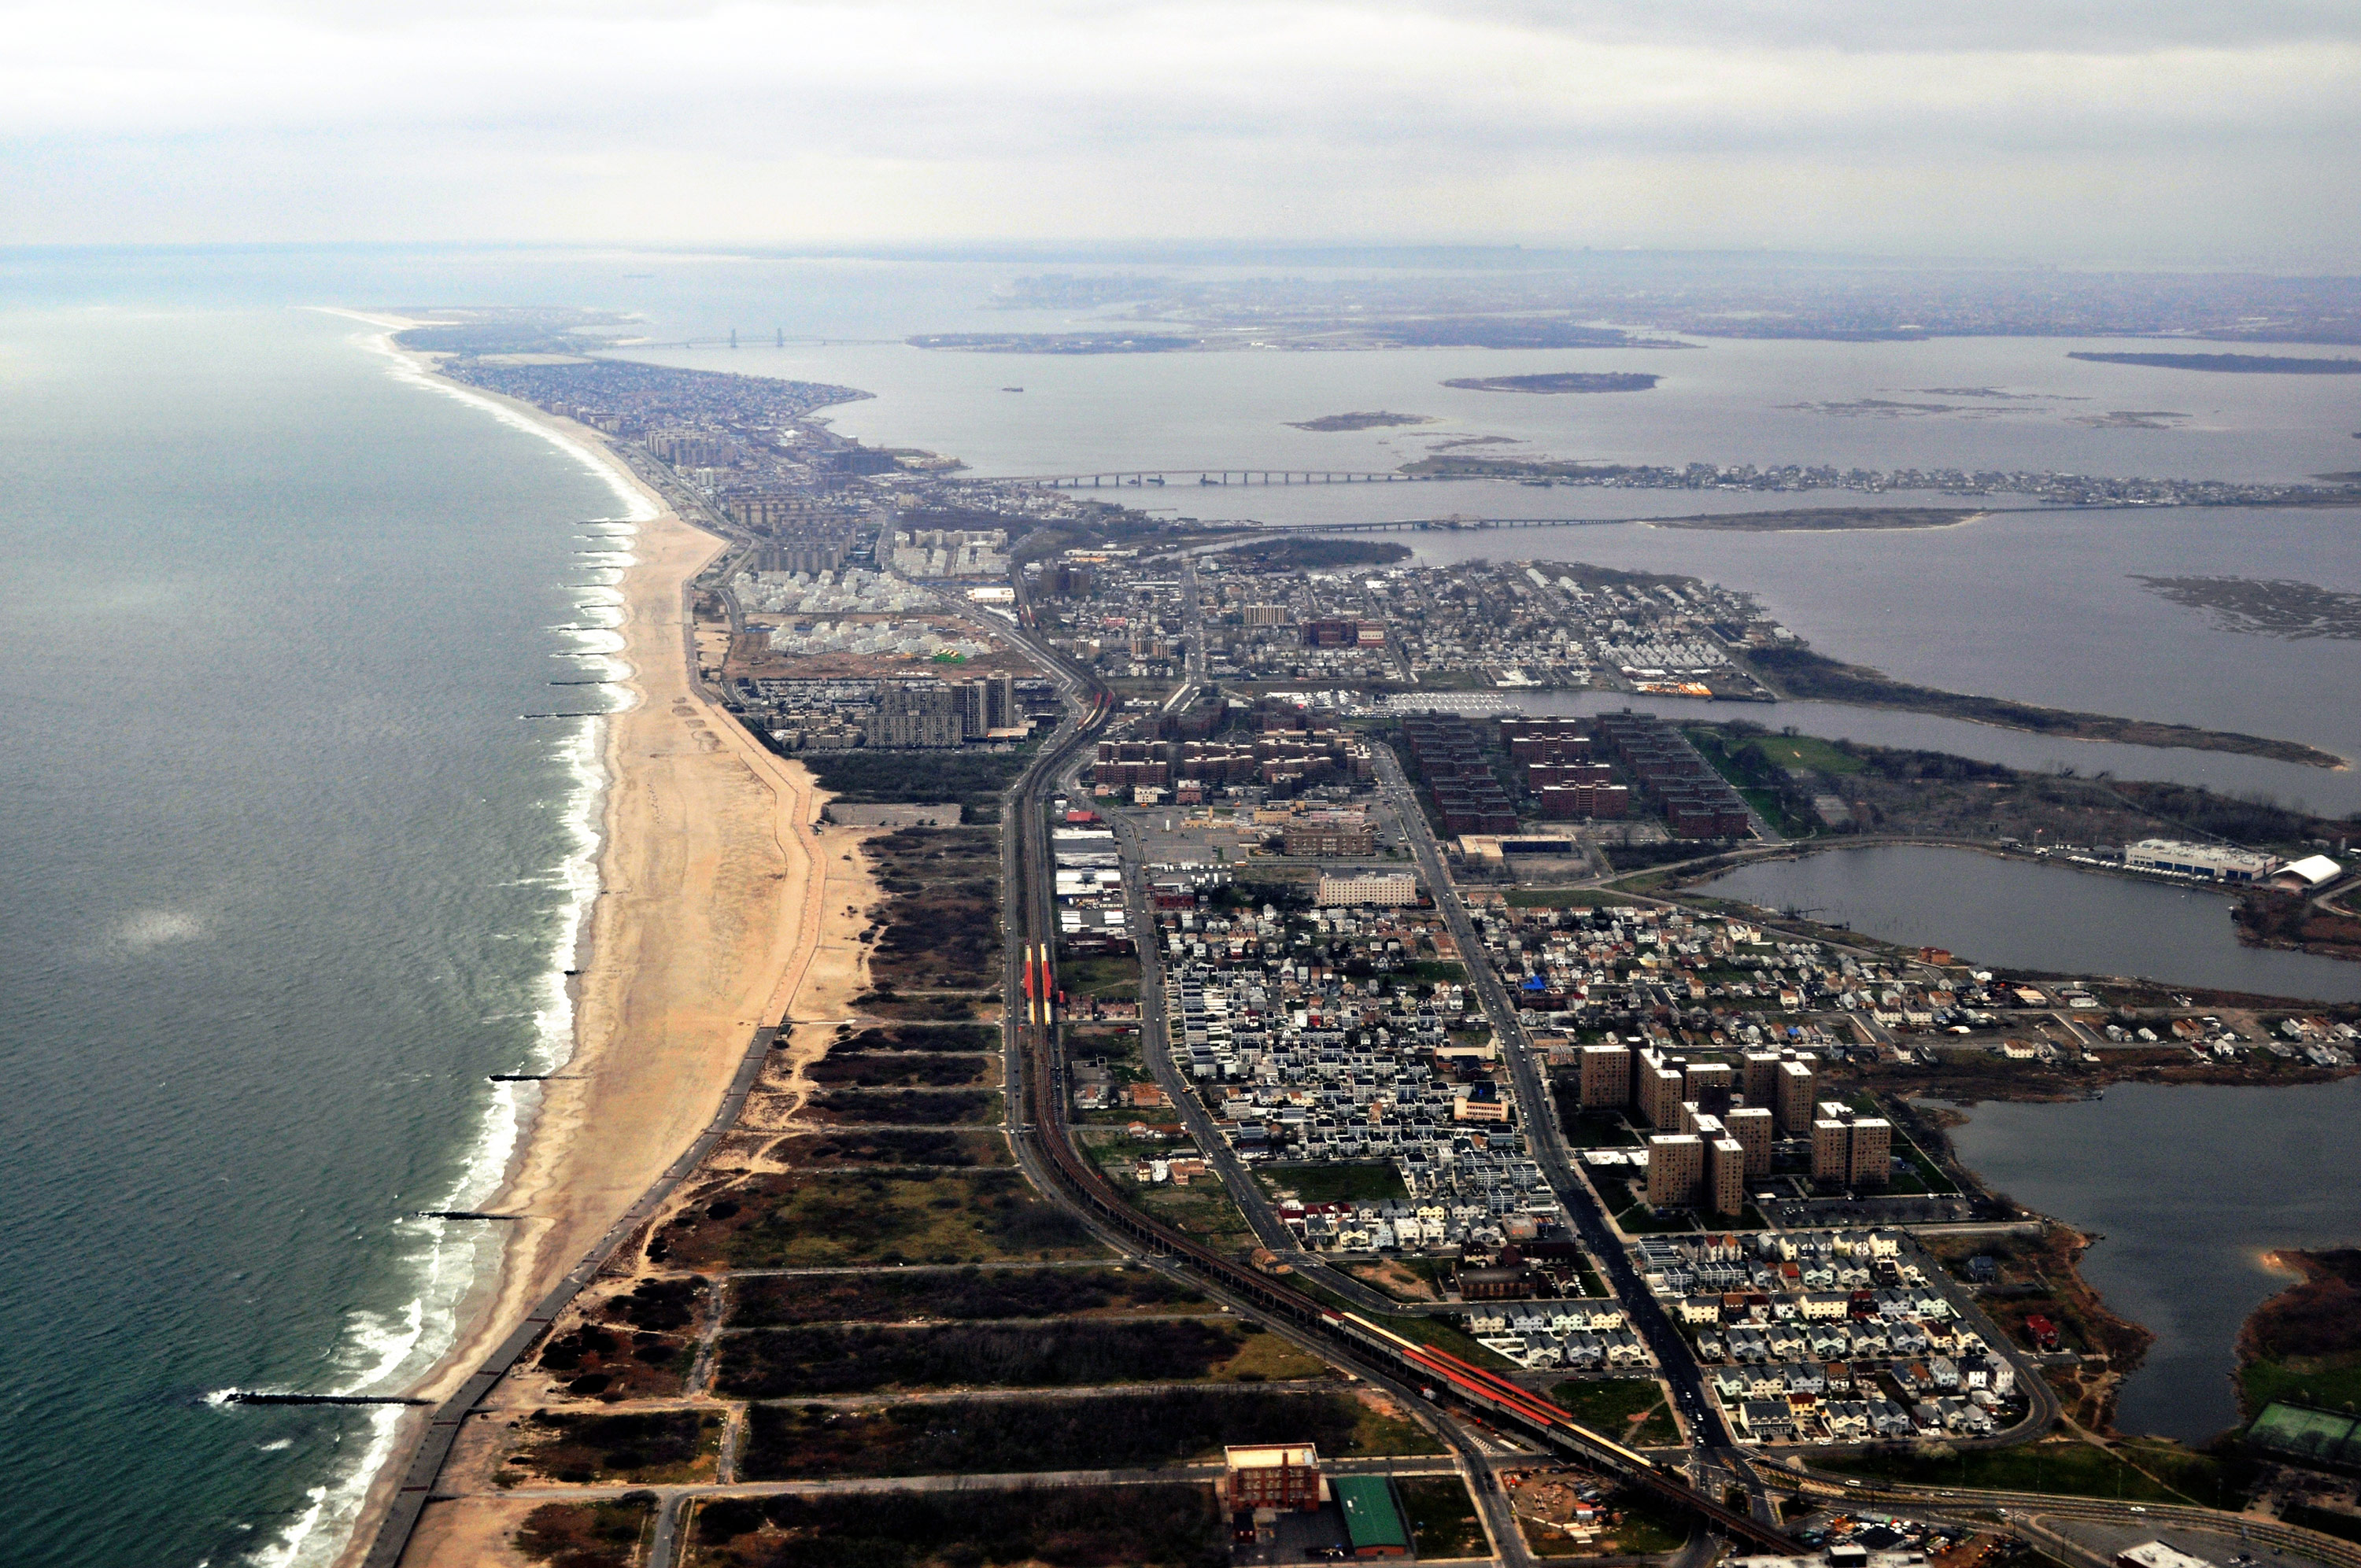 A birds-eye view of the Rockaway peninsula sandwiched between Jamaica Bay and the Atlantic.